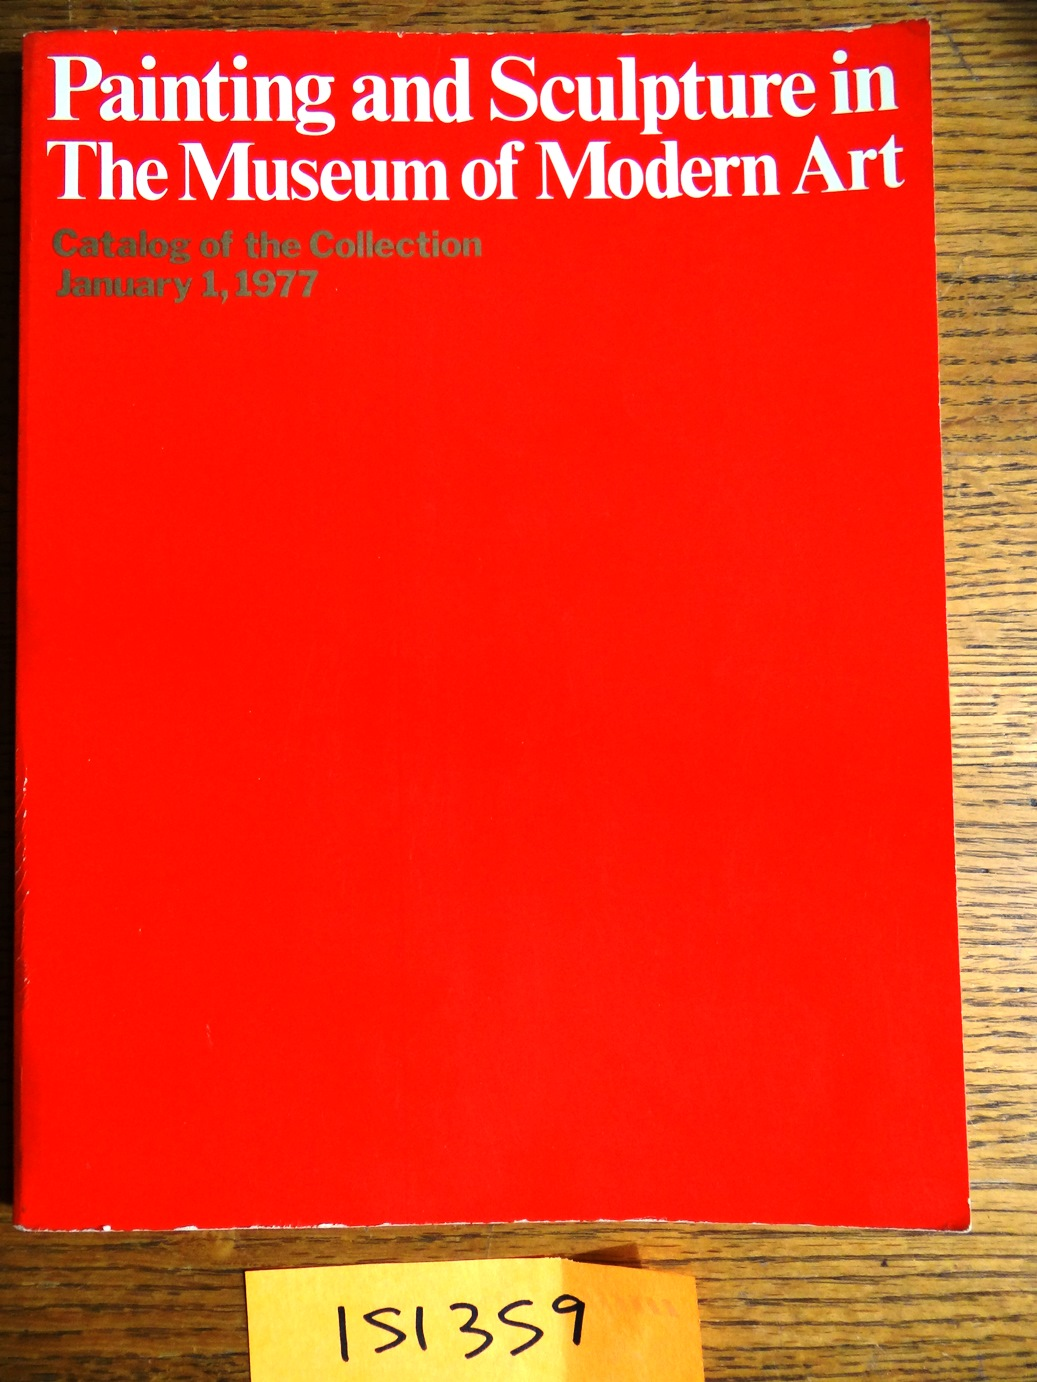 Paintings and Sculpture in The Museum of Modern Art with Selected Works on Paper: Catalogue of the Collection - Legg, Alicia (editor)